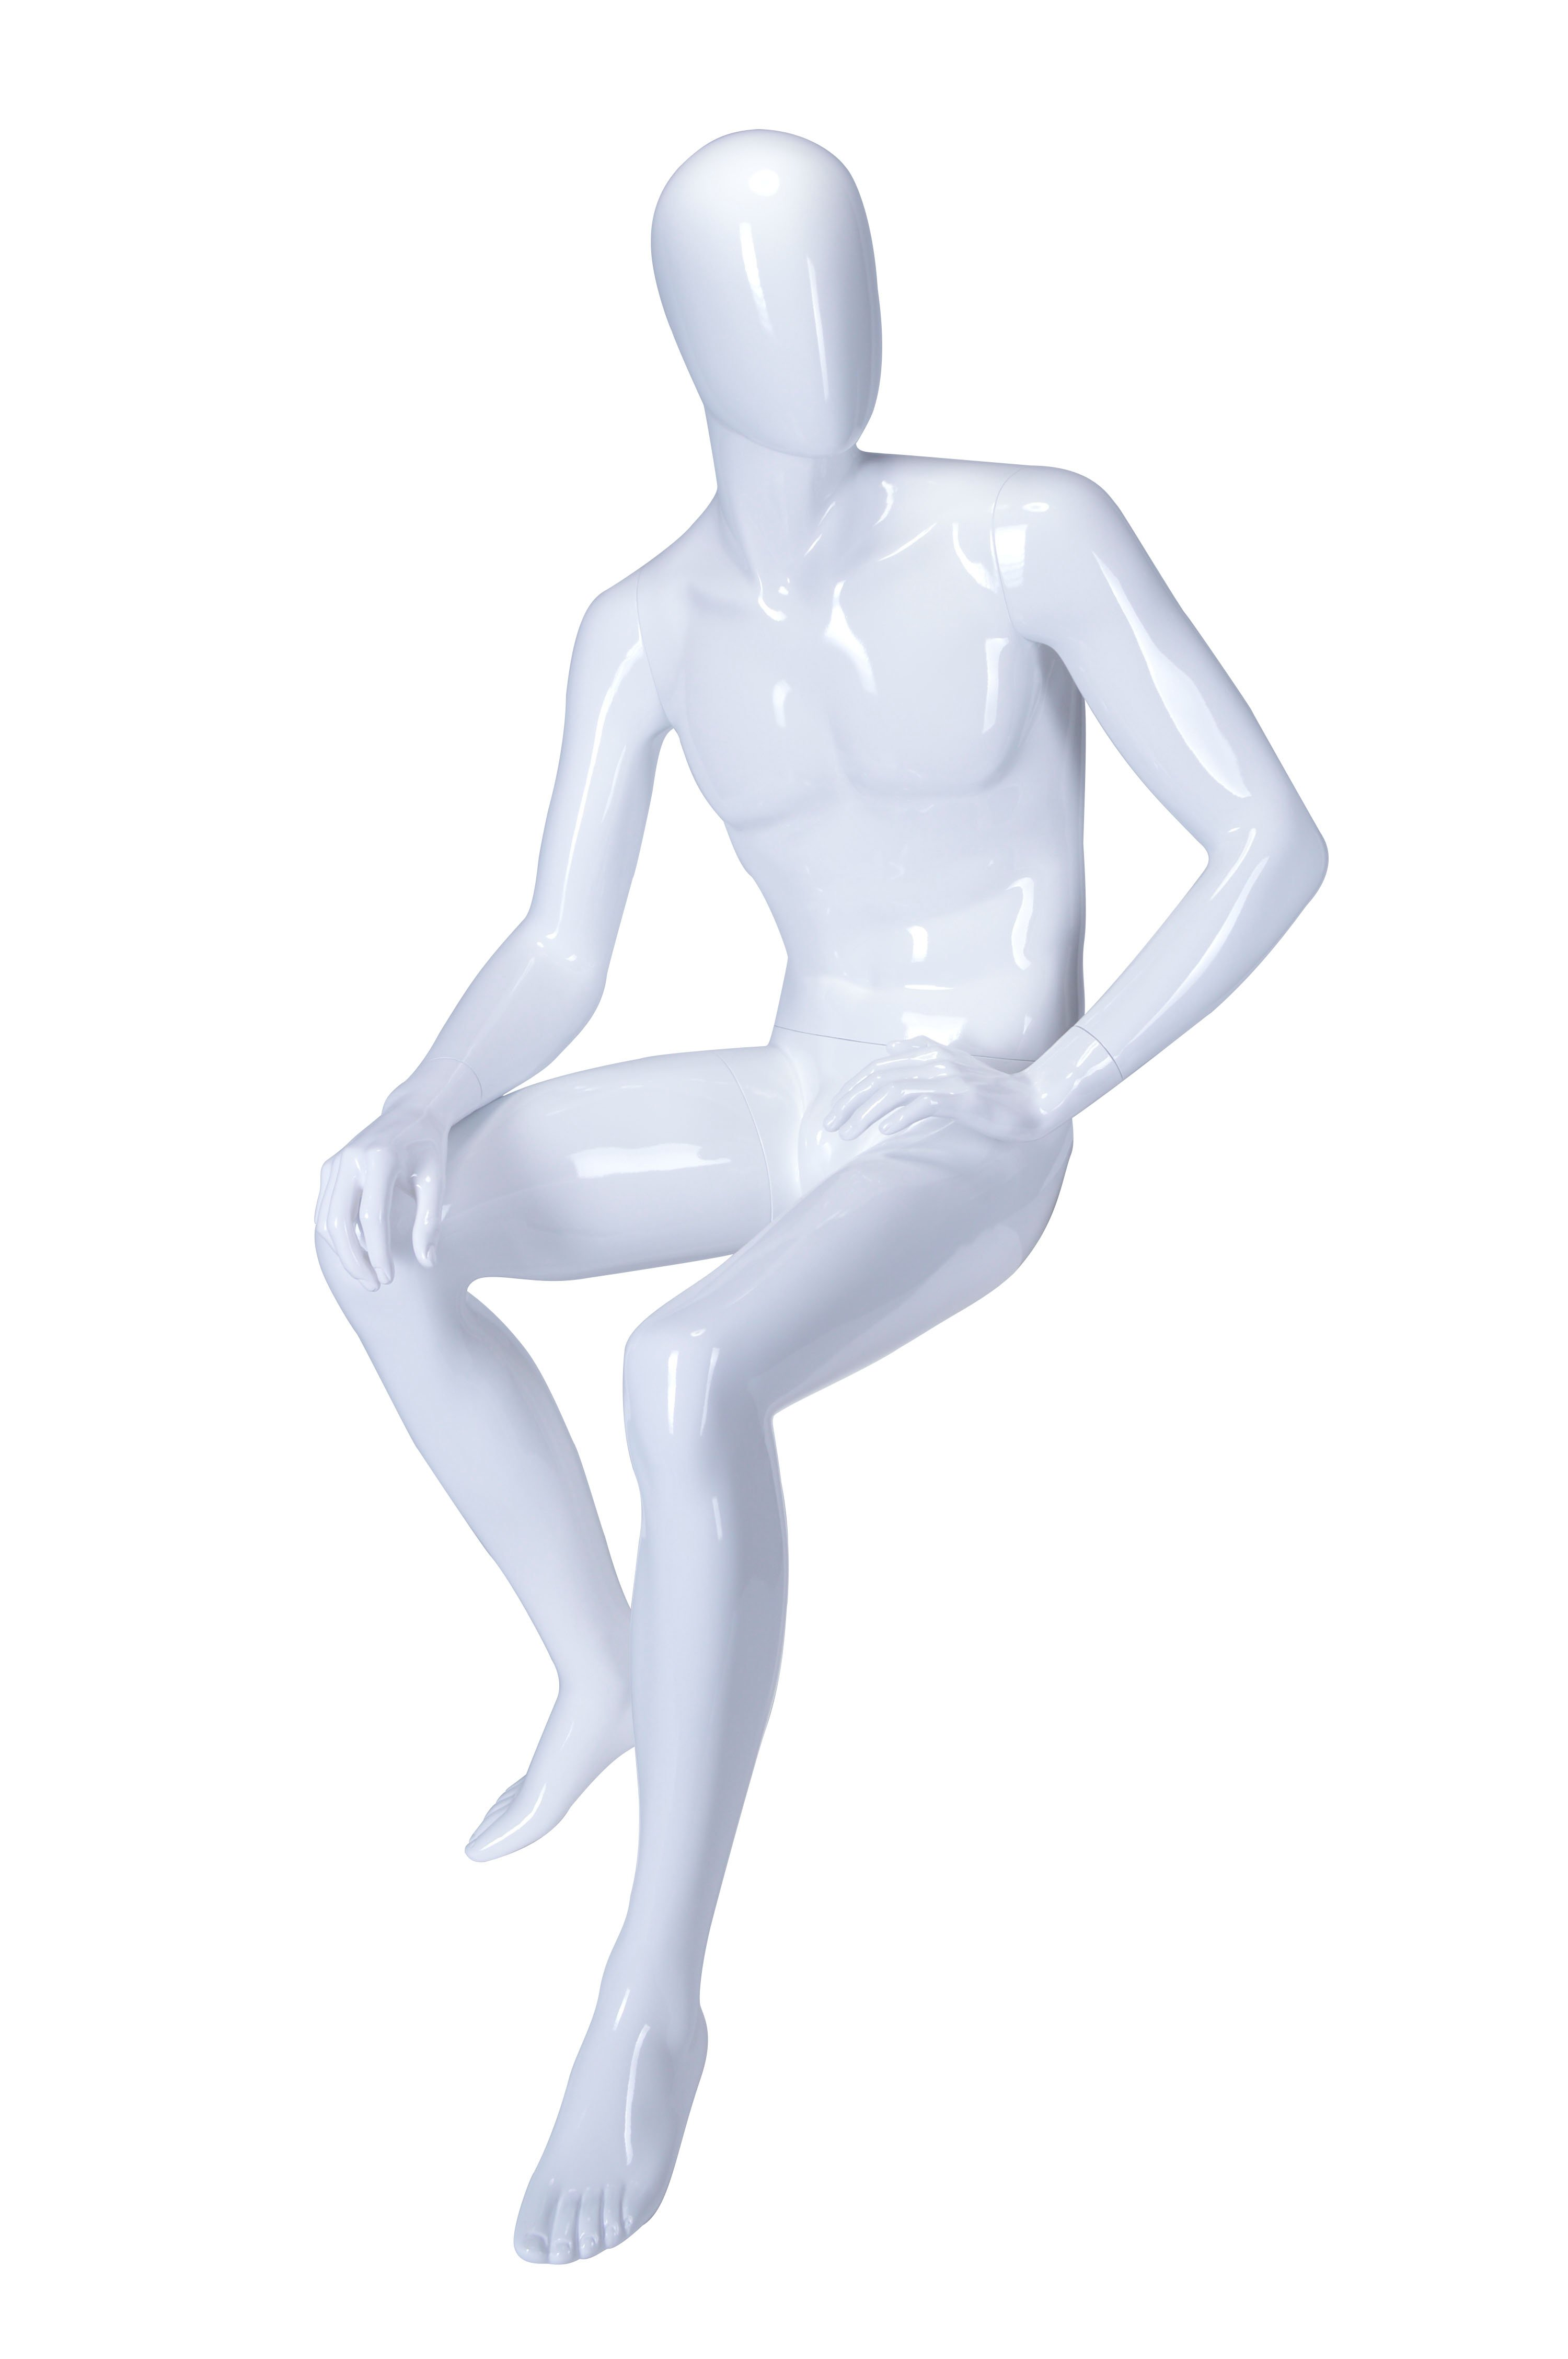 HBO-AR05 - Sitting Male Mannequin Fixed Position - White Glossy